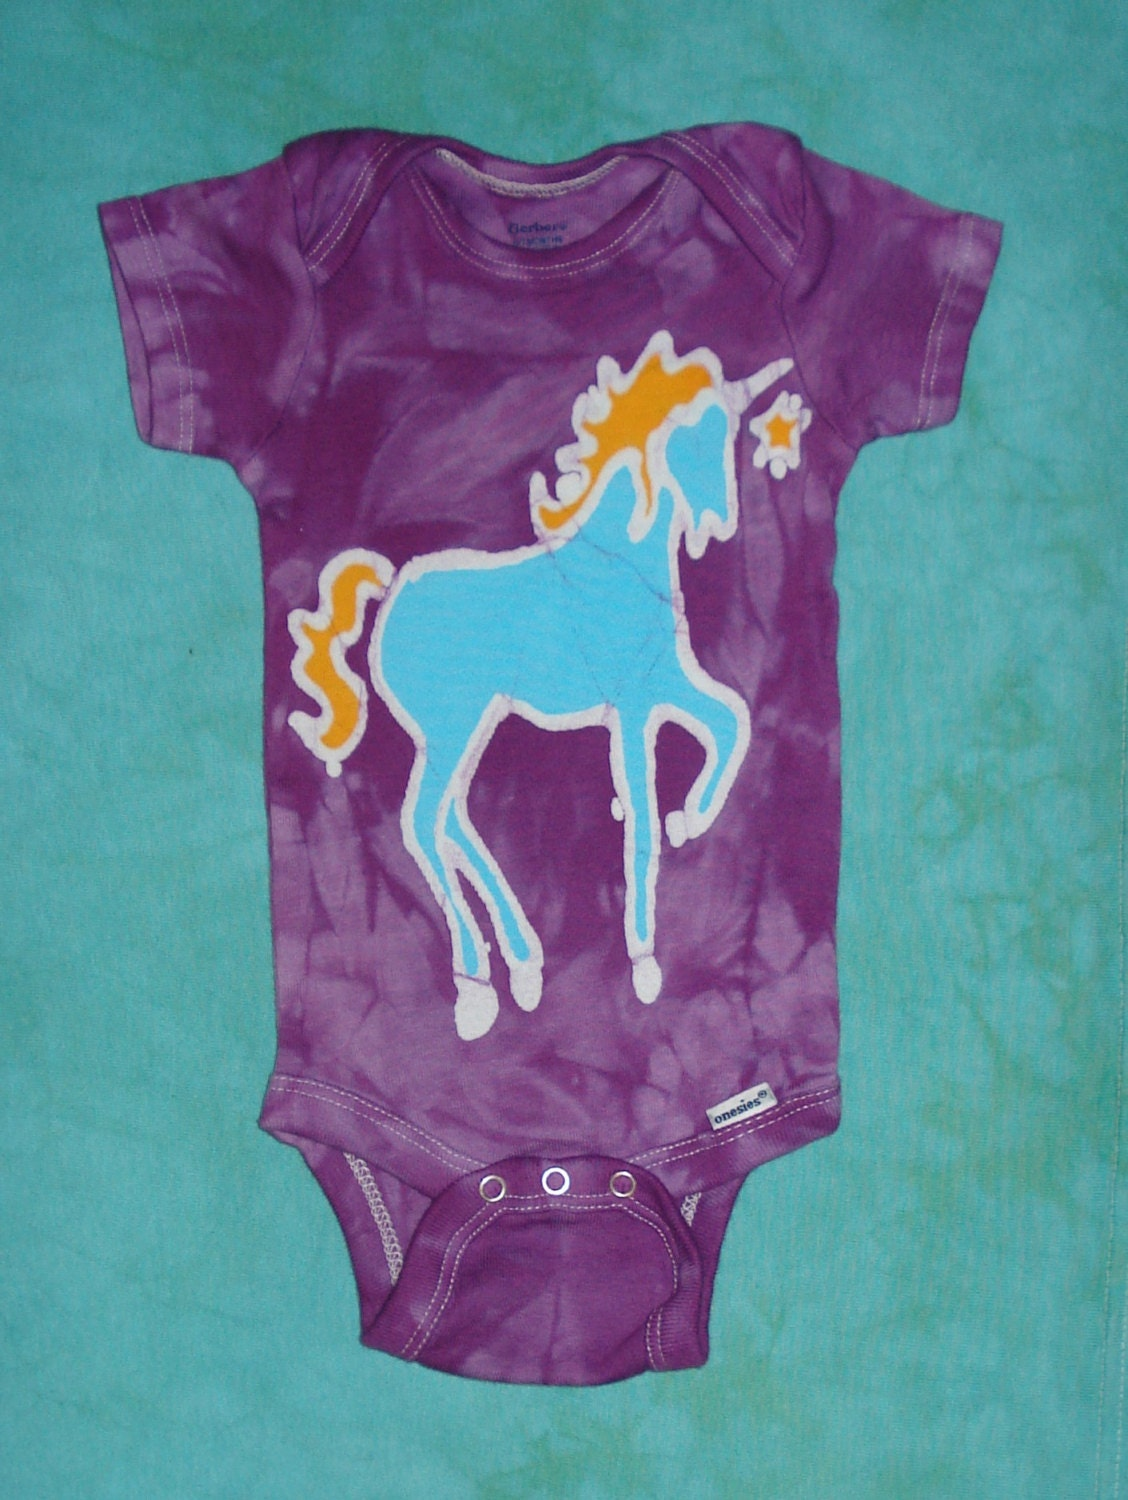 Find great deals on eBay for unicorn onesie and unicorn onesie kids. Shop with confidence.